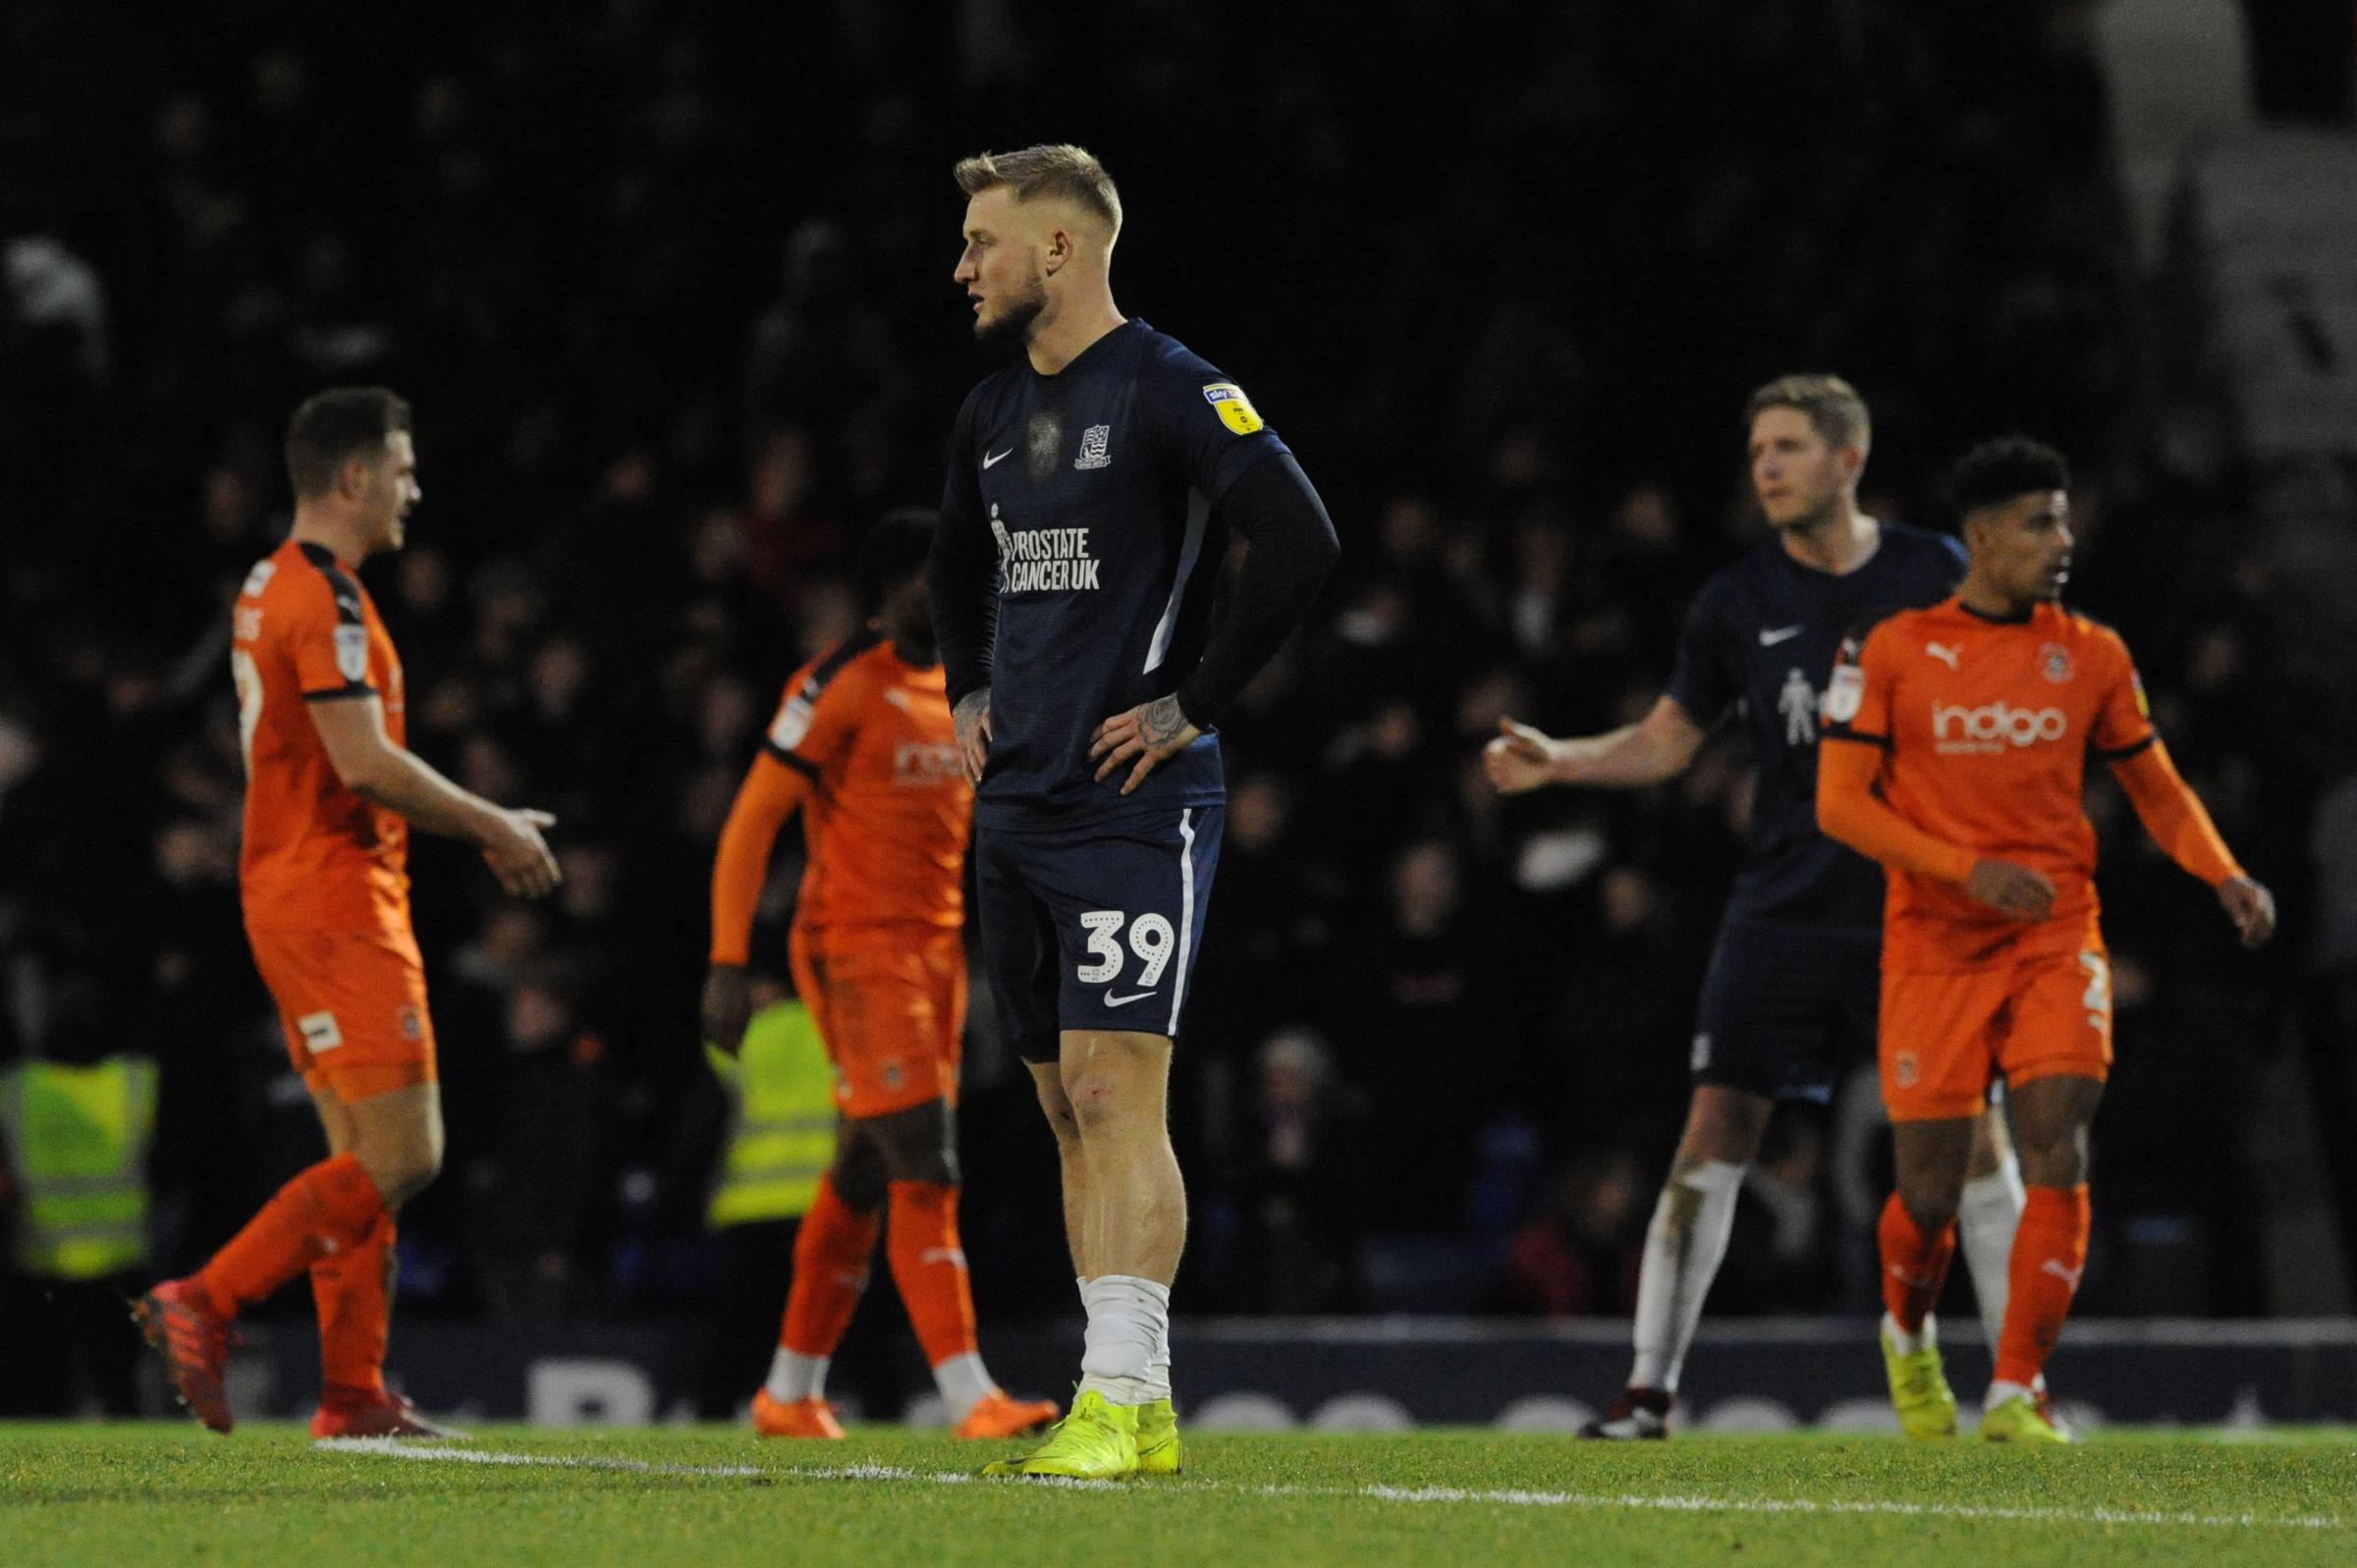 Frustrated - Southend United were beaten 1-0 by Luton Town at Roots Hall last weekend